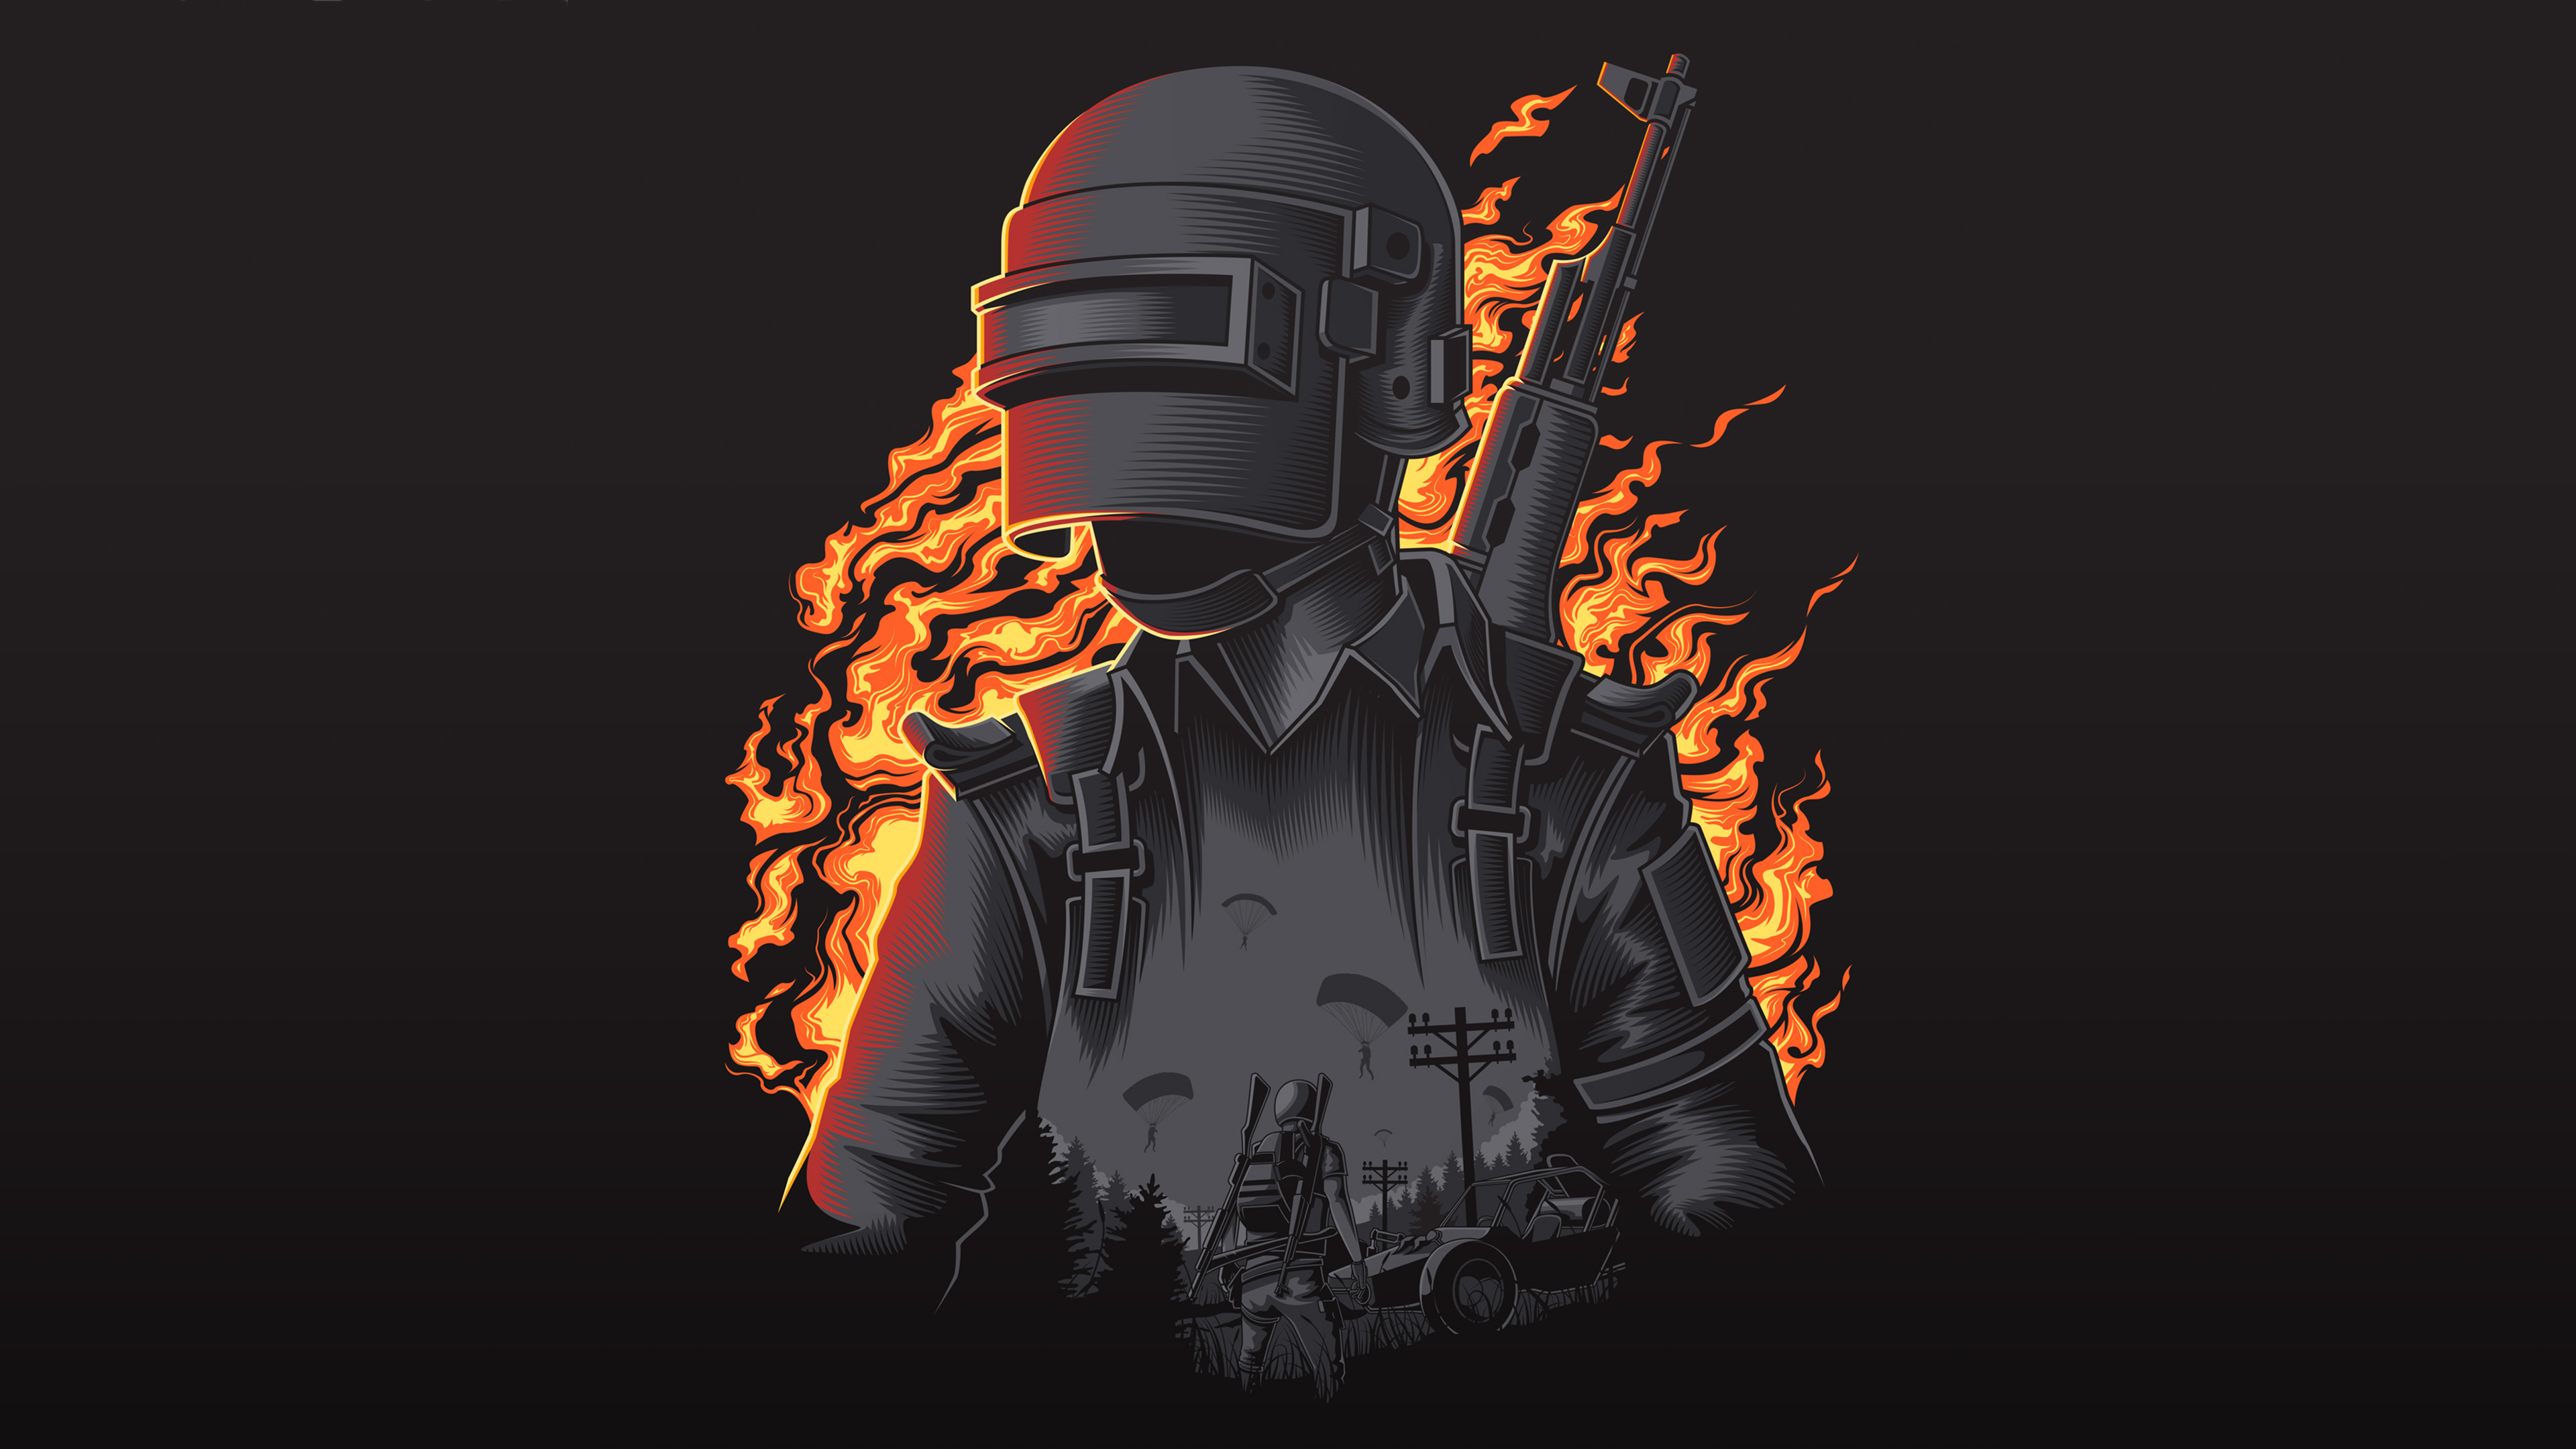 16 Luxury Pubg Wallpaper Iphone 6: 1920x1080 Pubg Illustration 4k Laptop Full HD 1080P HD 4k